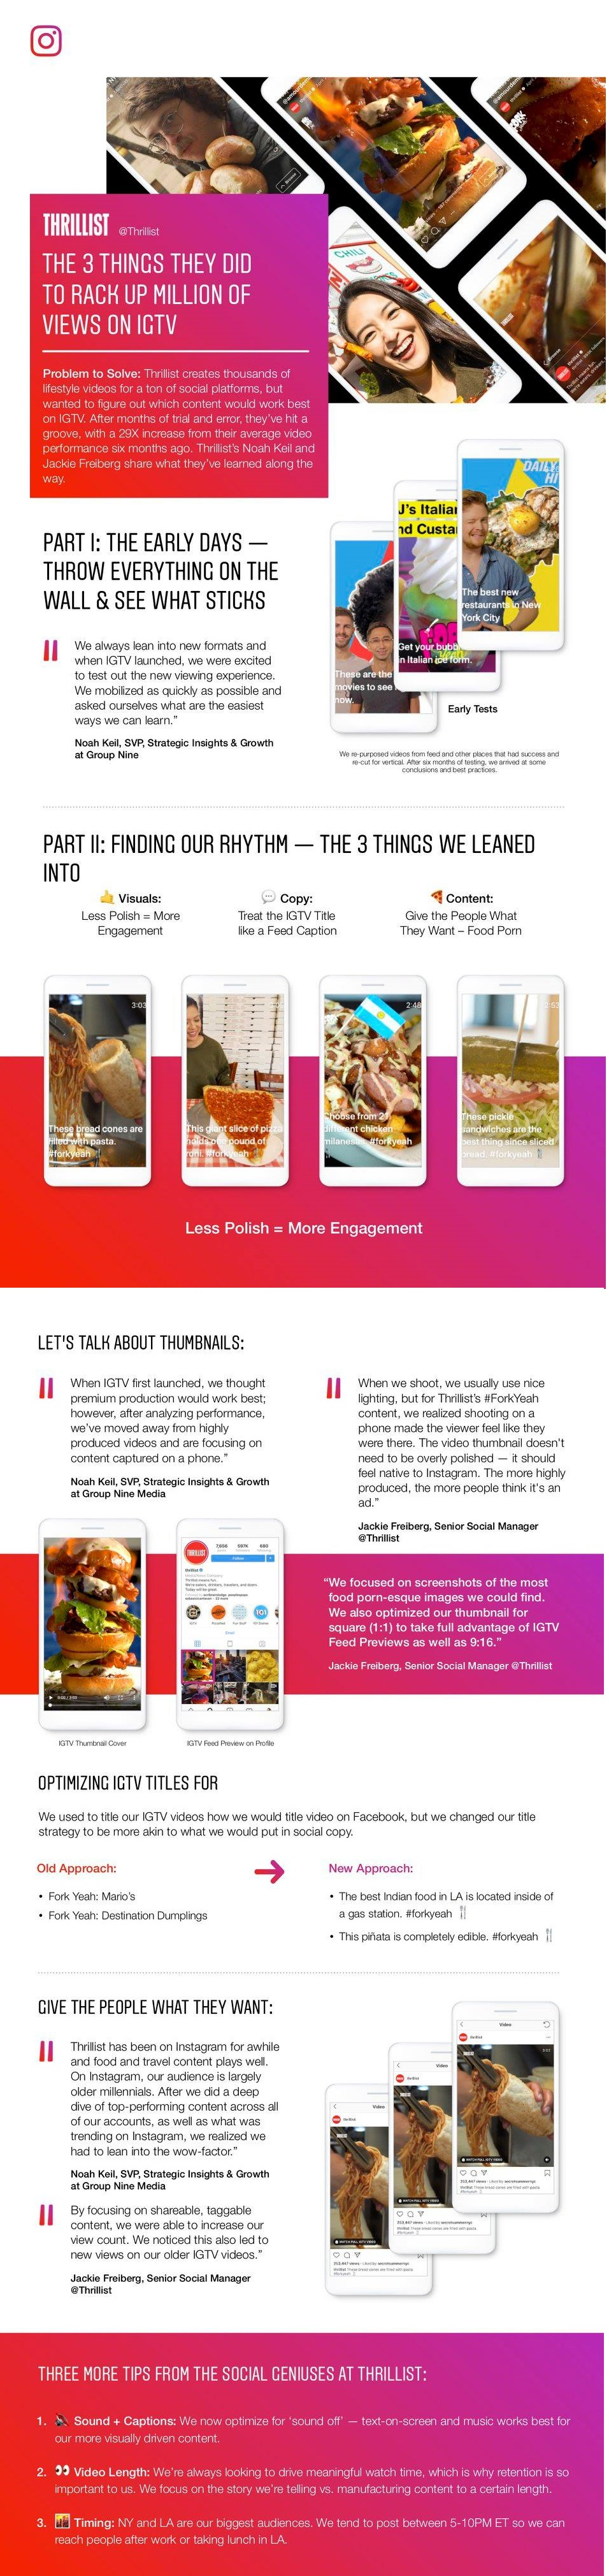 Infographic lists IGTV tips